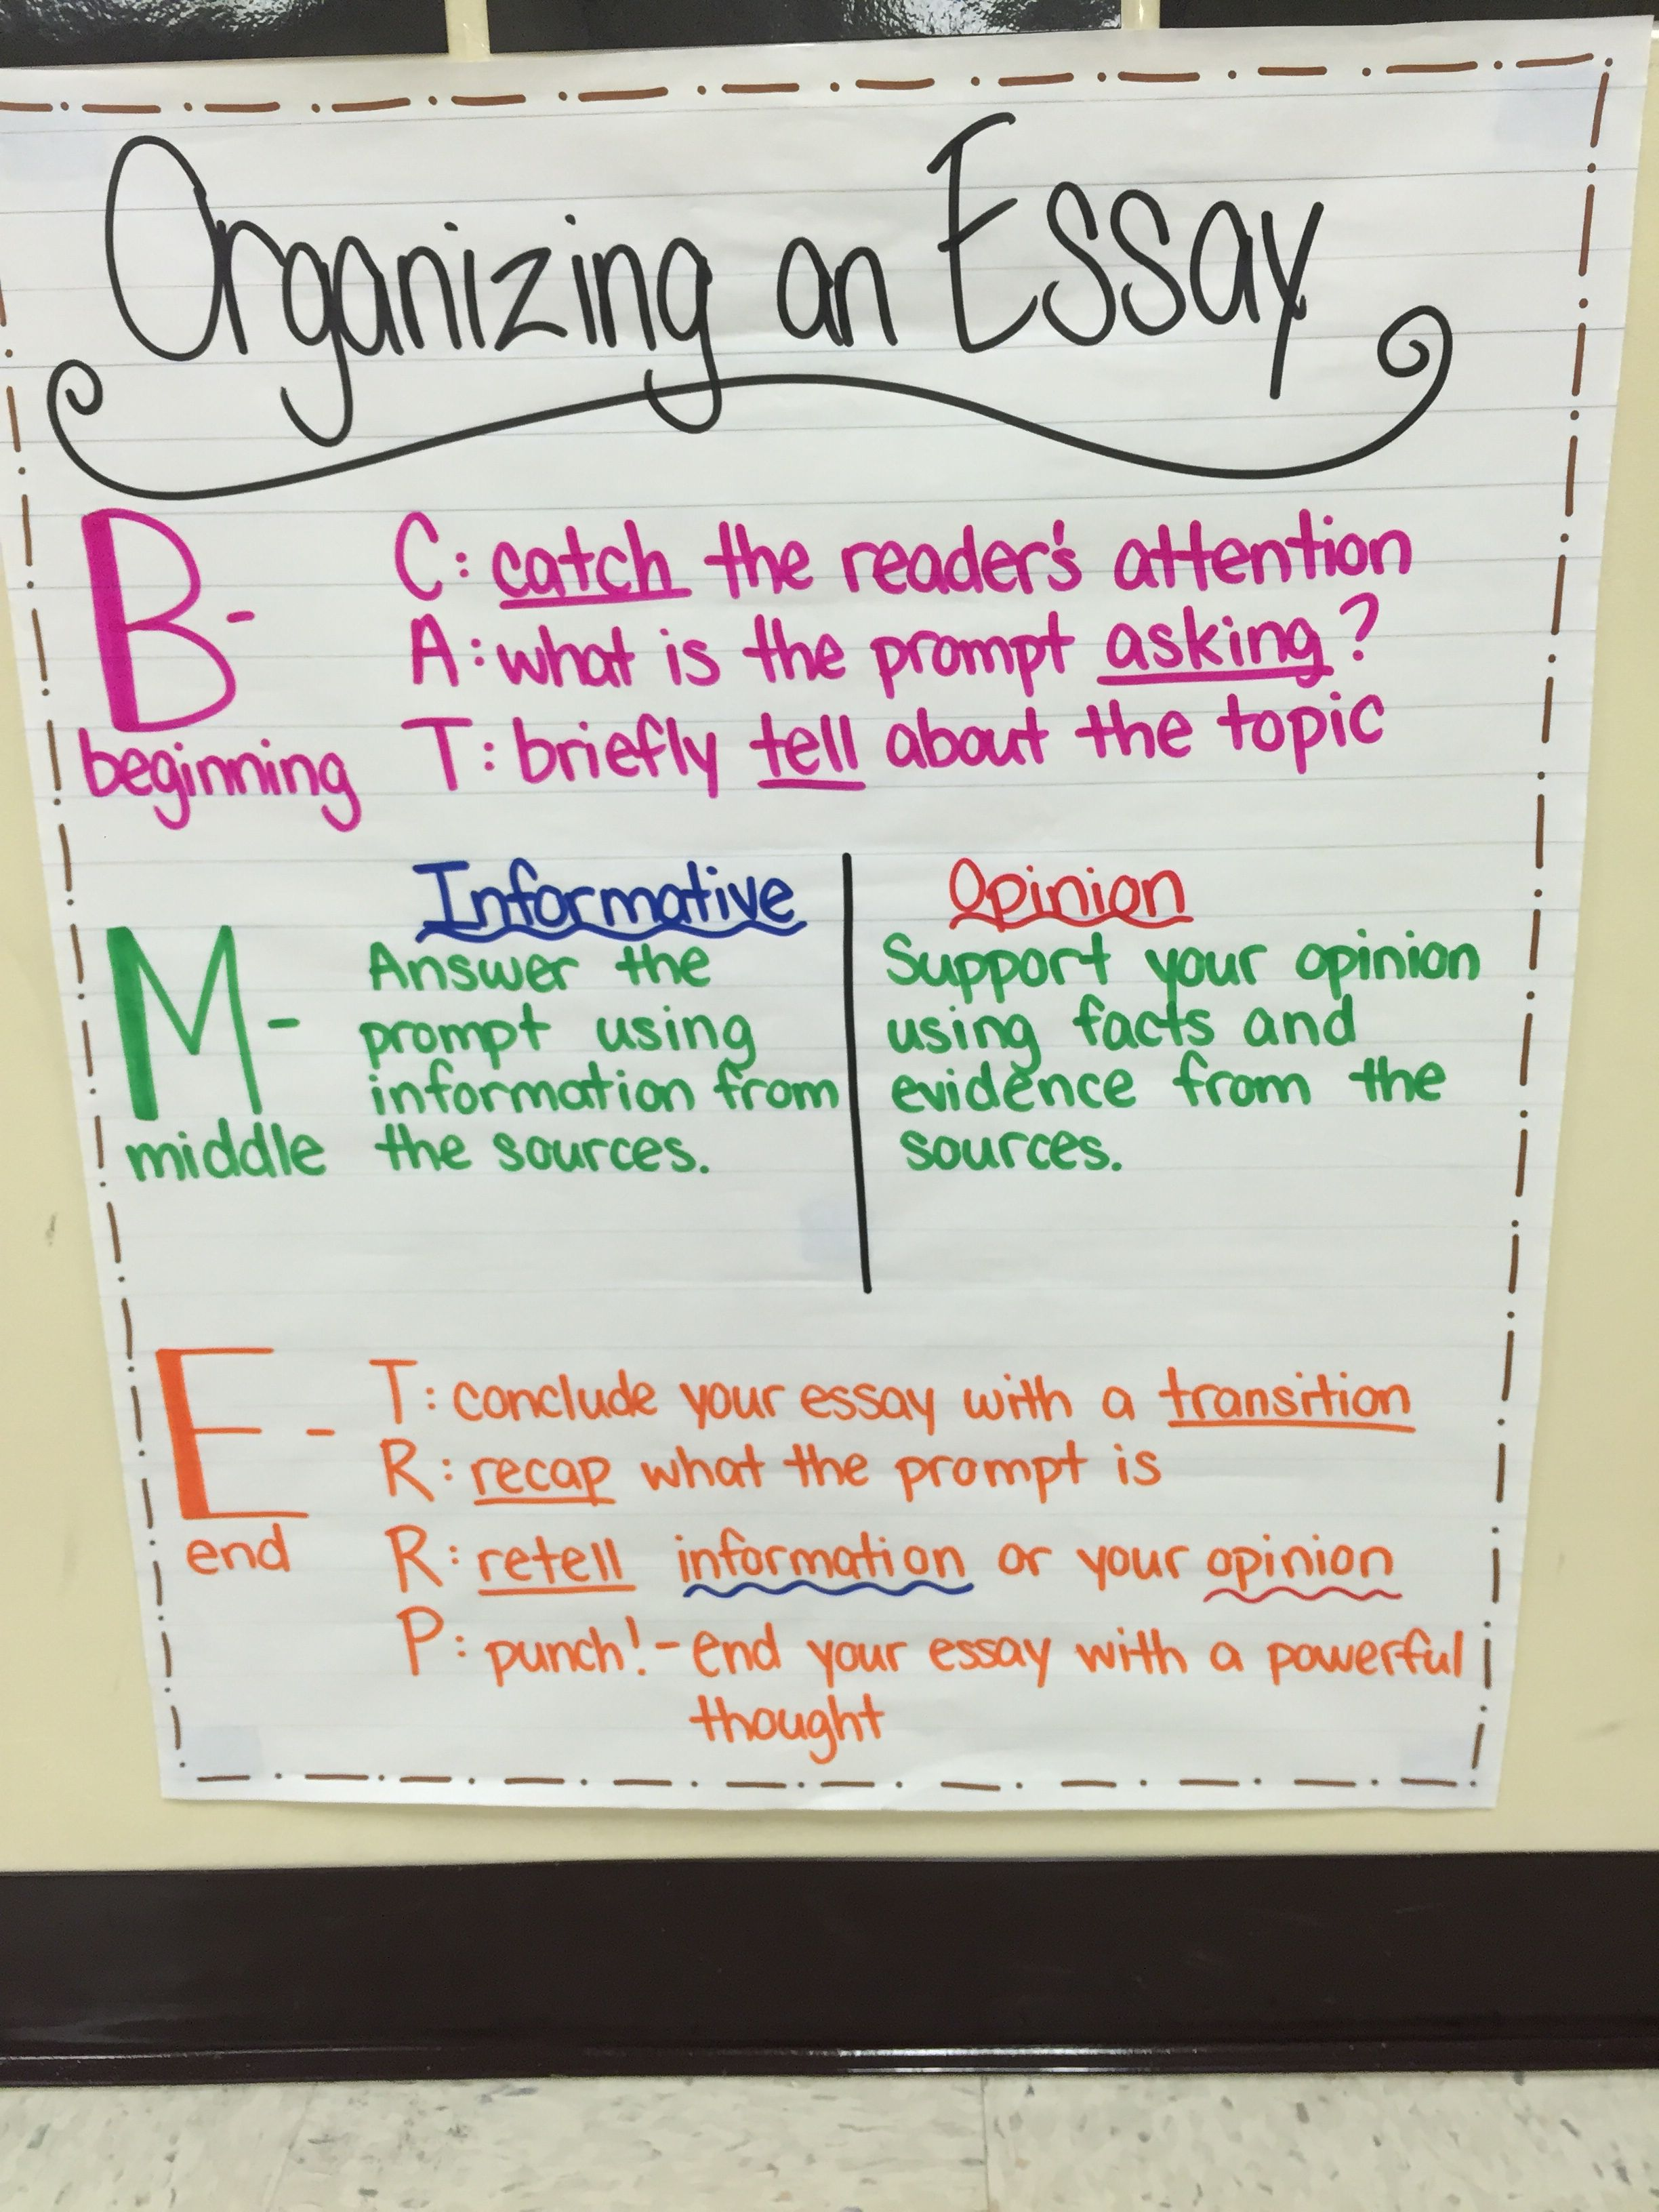 organizing an essay anchor chart fsa styled writing for 4th grade